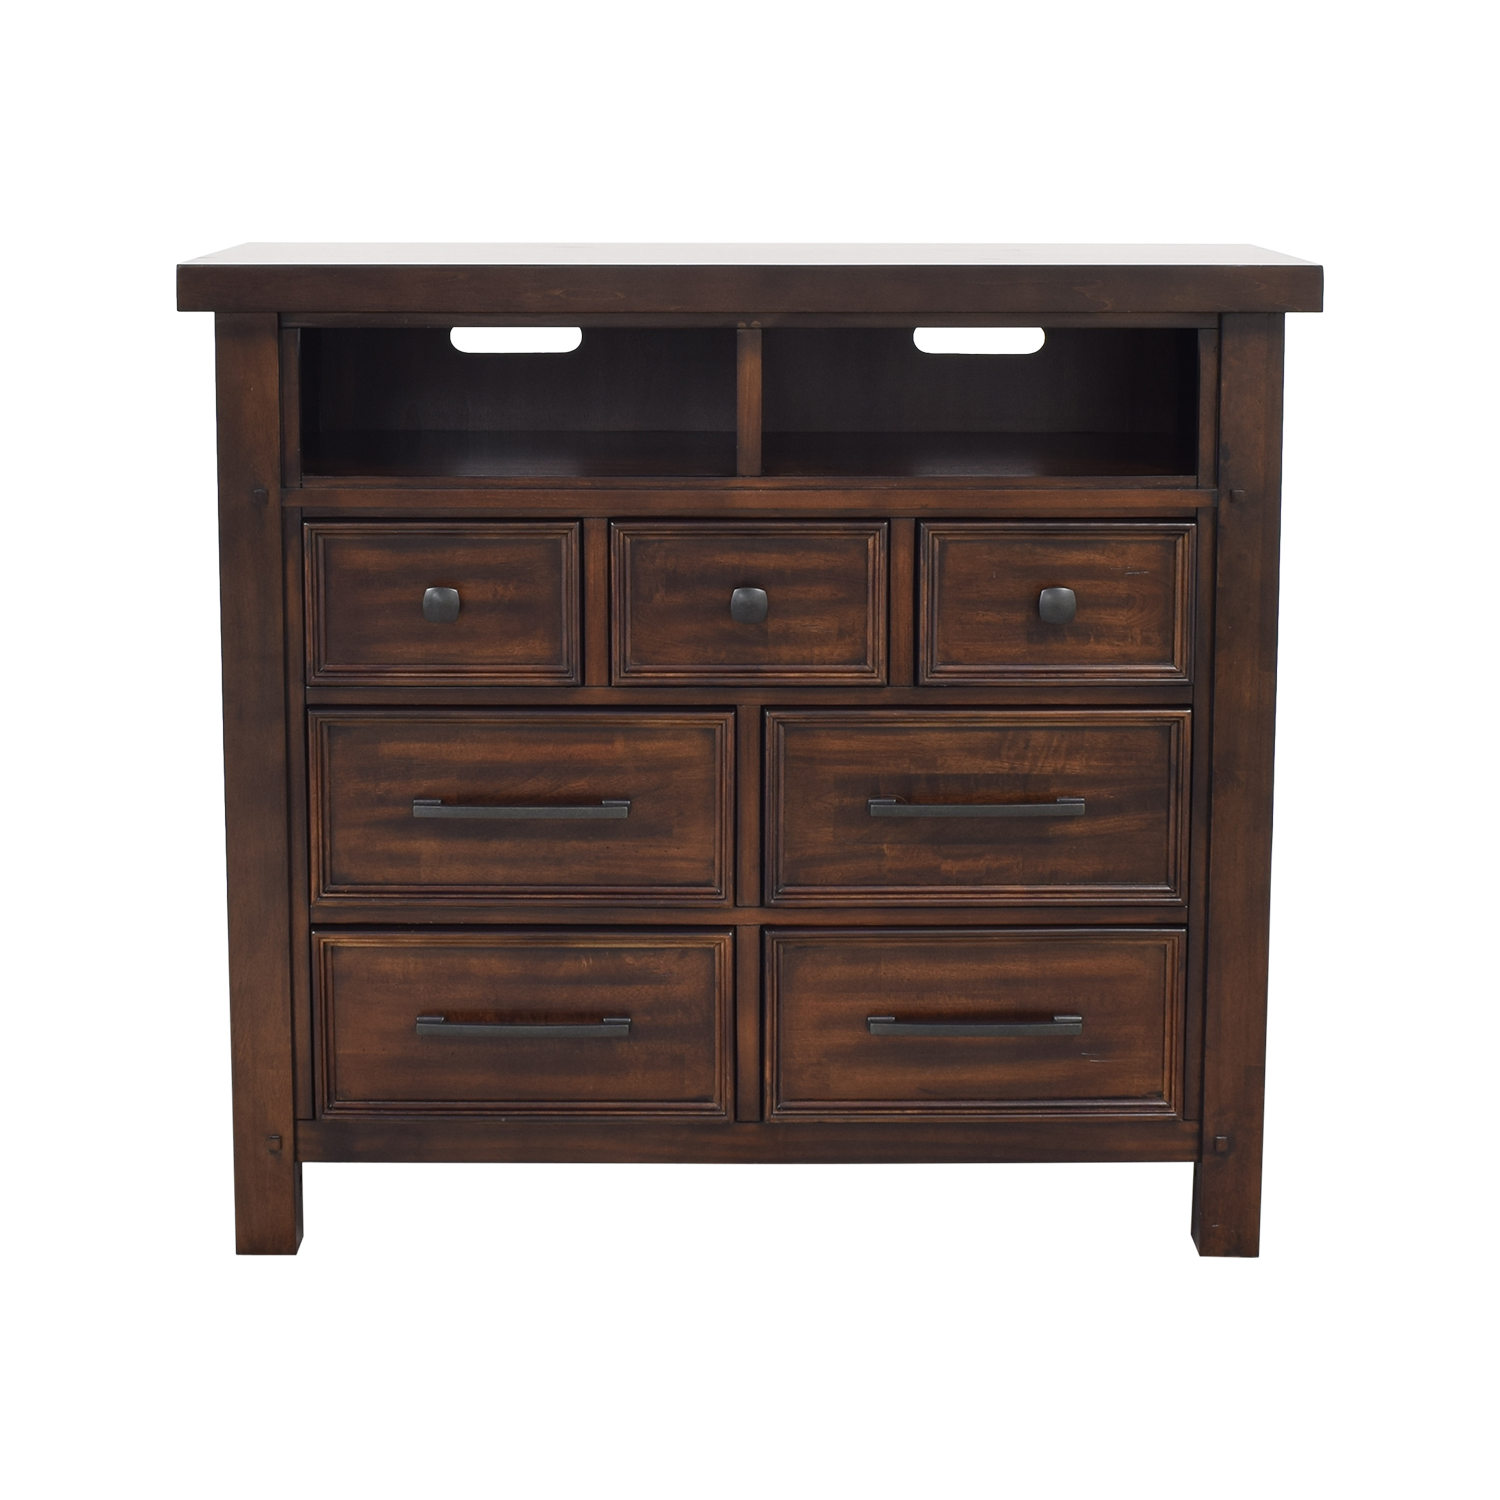 Hudson Goods Hudson Goods Chest of Drawers Storage